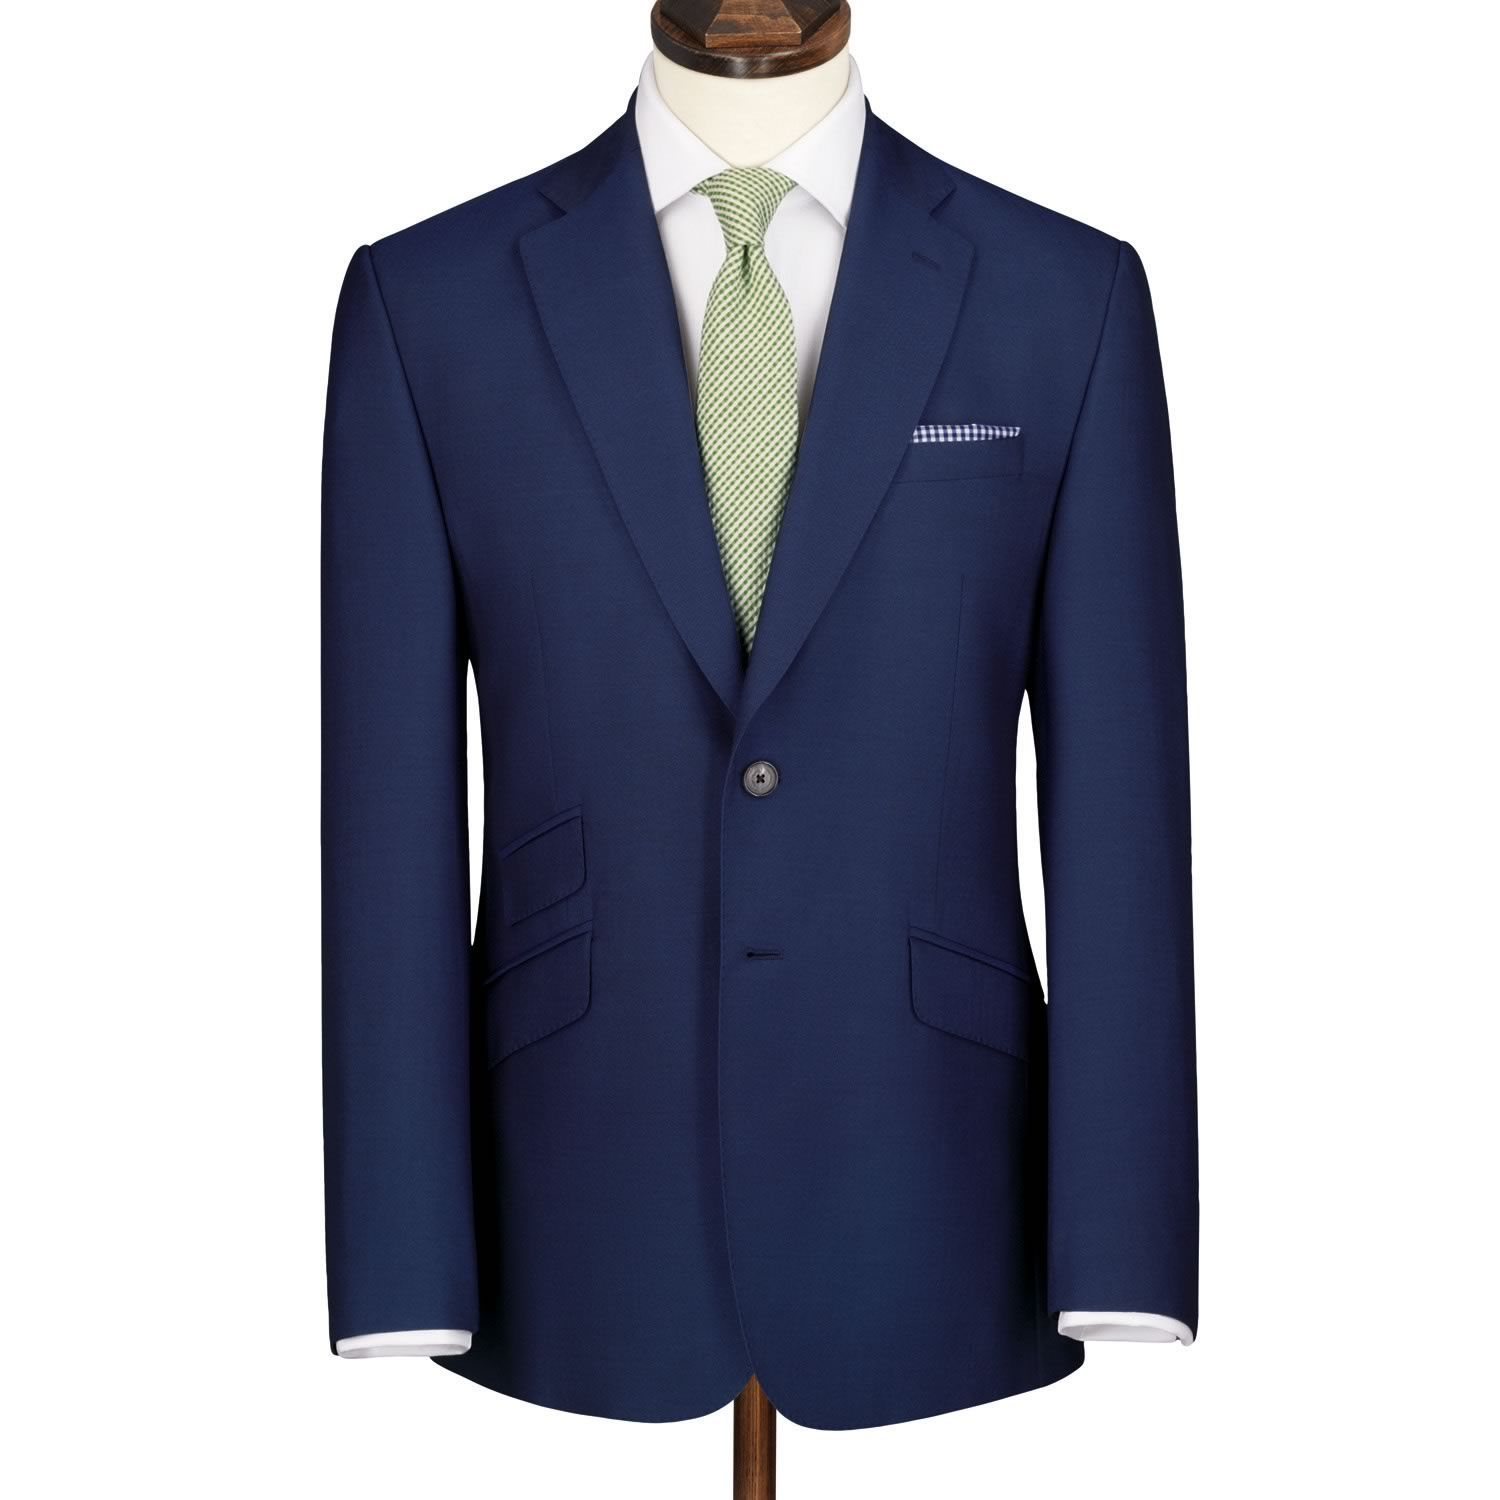 Cobalt panama Yorkshire worsted slim fit luxury suit jacket | Men's business suits from Charles Tyrwhitt | CTShirts.com